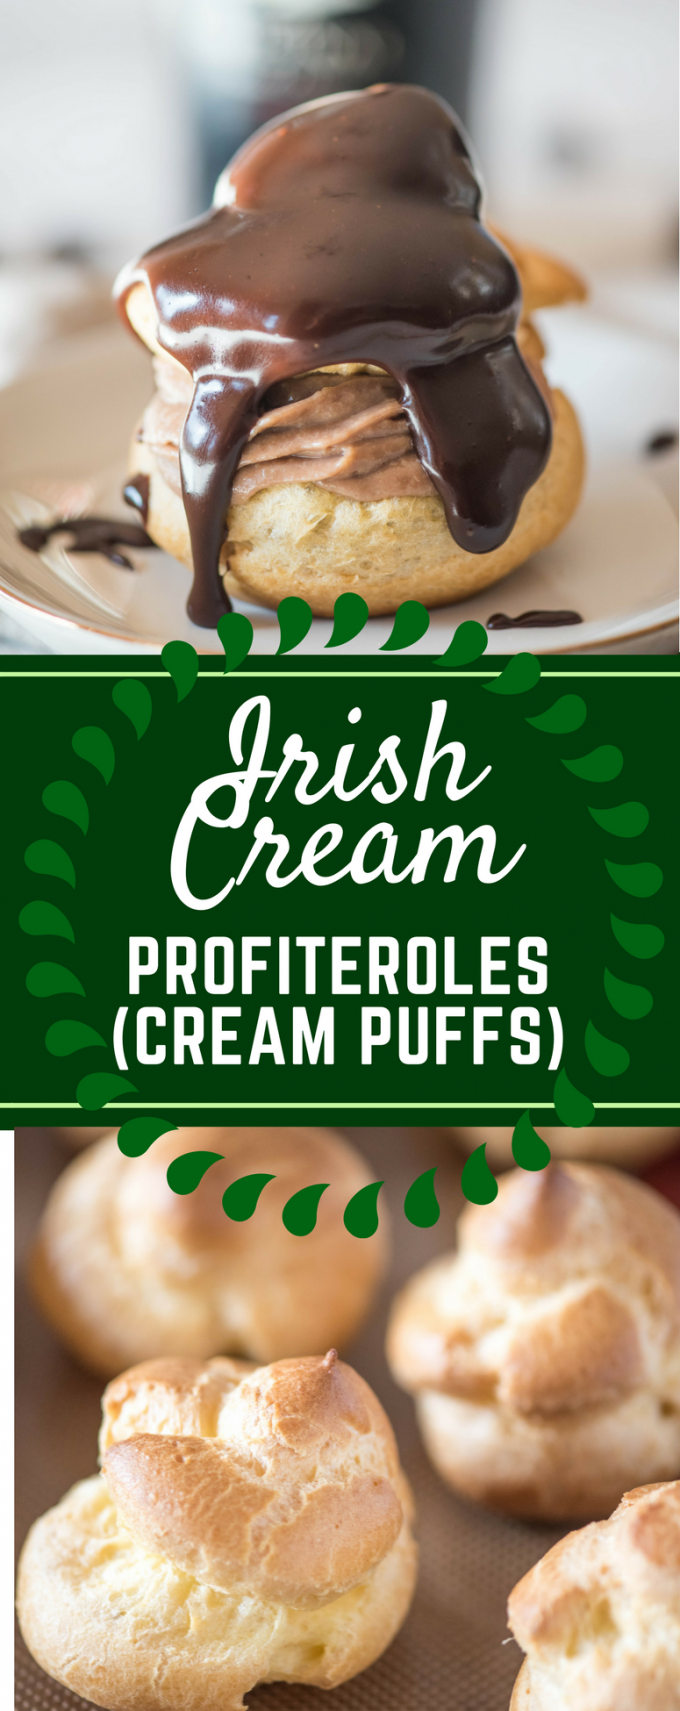 This easy Irish Cream Profiteroles recipe puts a fun Irish twist on your favorite classic cream puffs! Complete with a boozy Bailey's filling and topped with a delicious chocolate ganache, they are perfect for your St. Patrick's Day parties! #stpatricksdayrecipes #stpatricksday #creampuffrecipes #easyprofiteroles #gogogogourmet